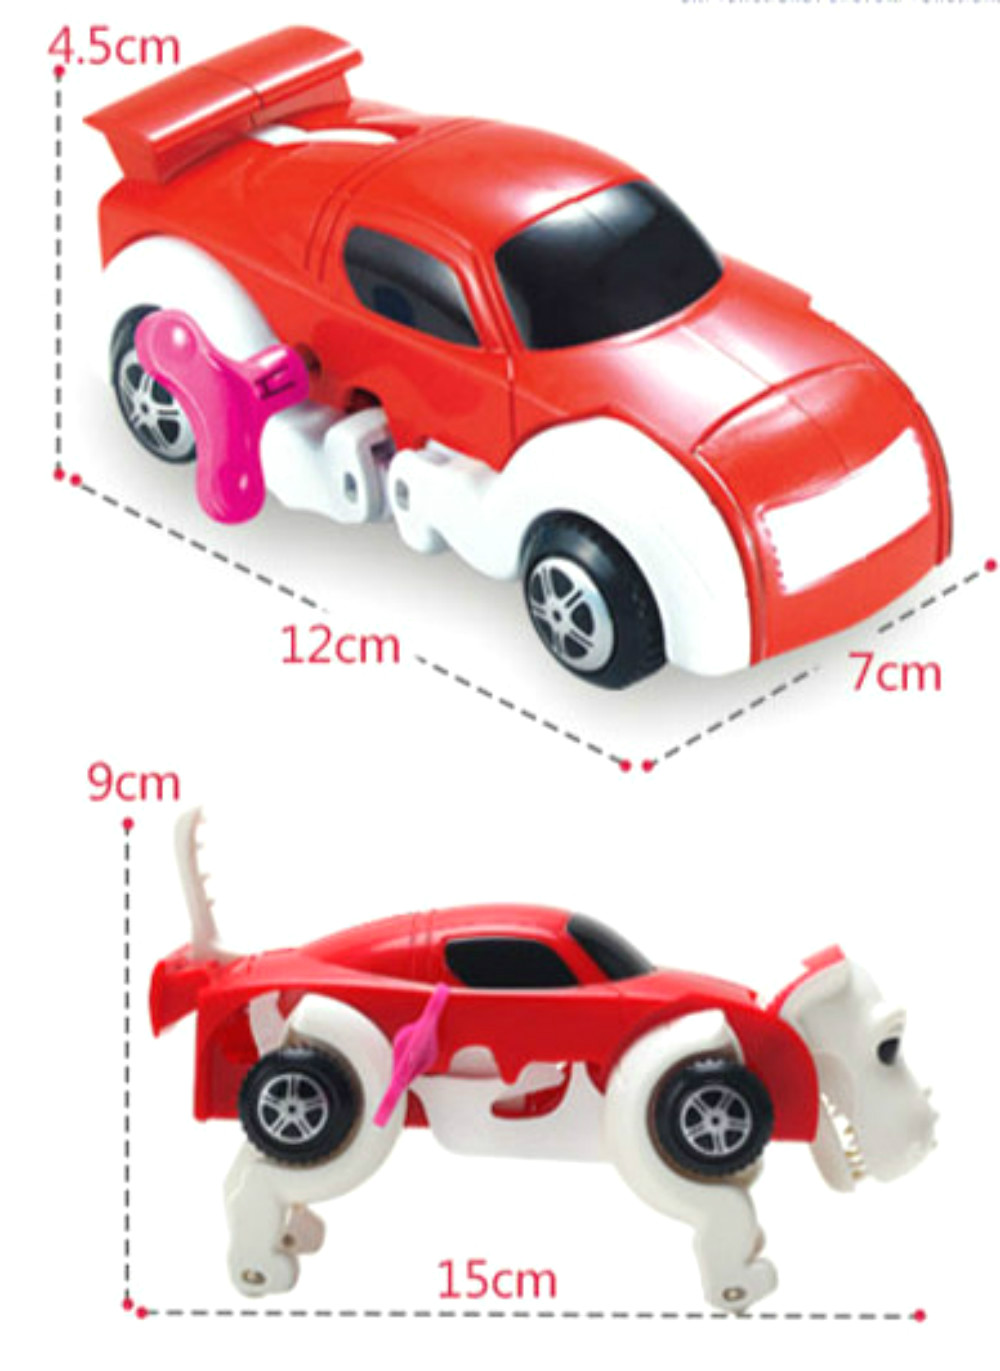 New Automatic Transform Dinosaur Car Vehicle Clockwork Wind Up Toy for Children